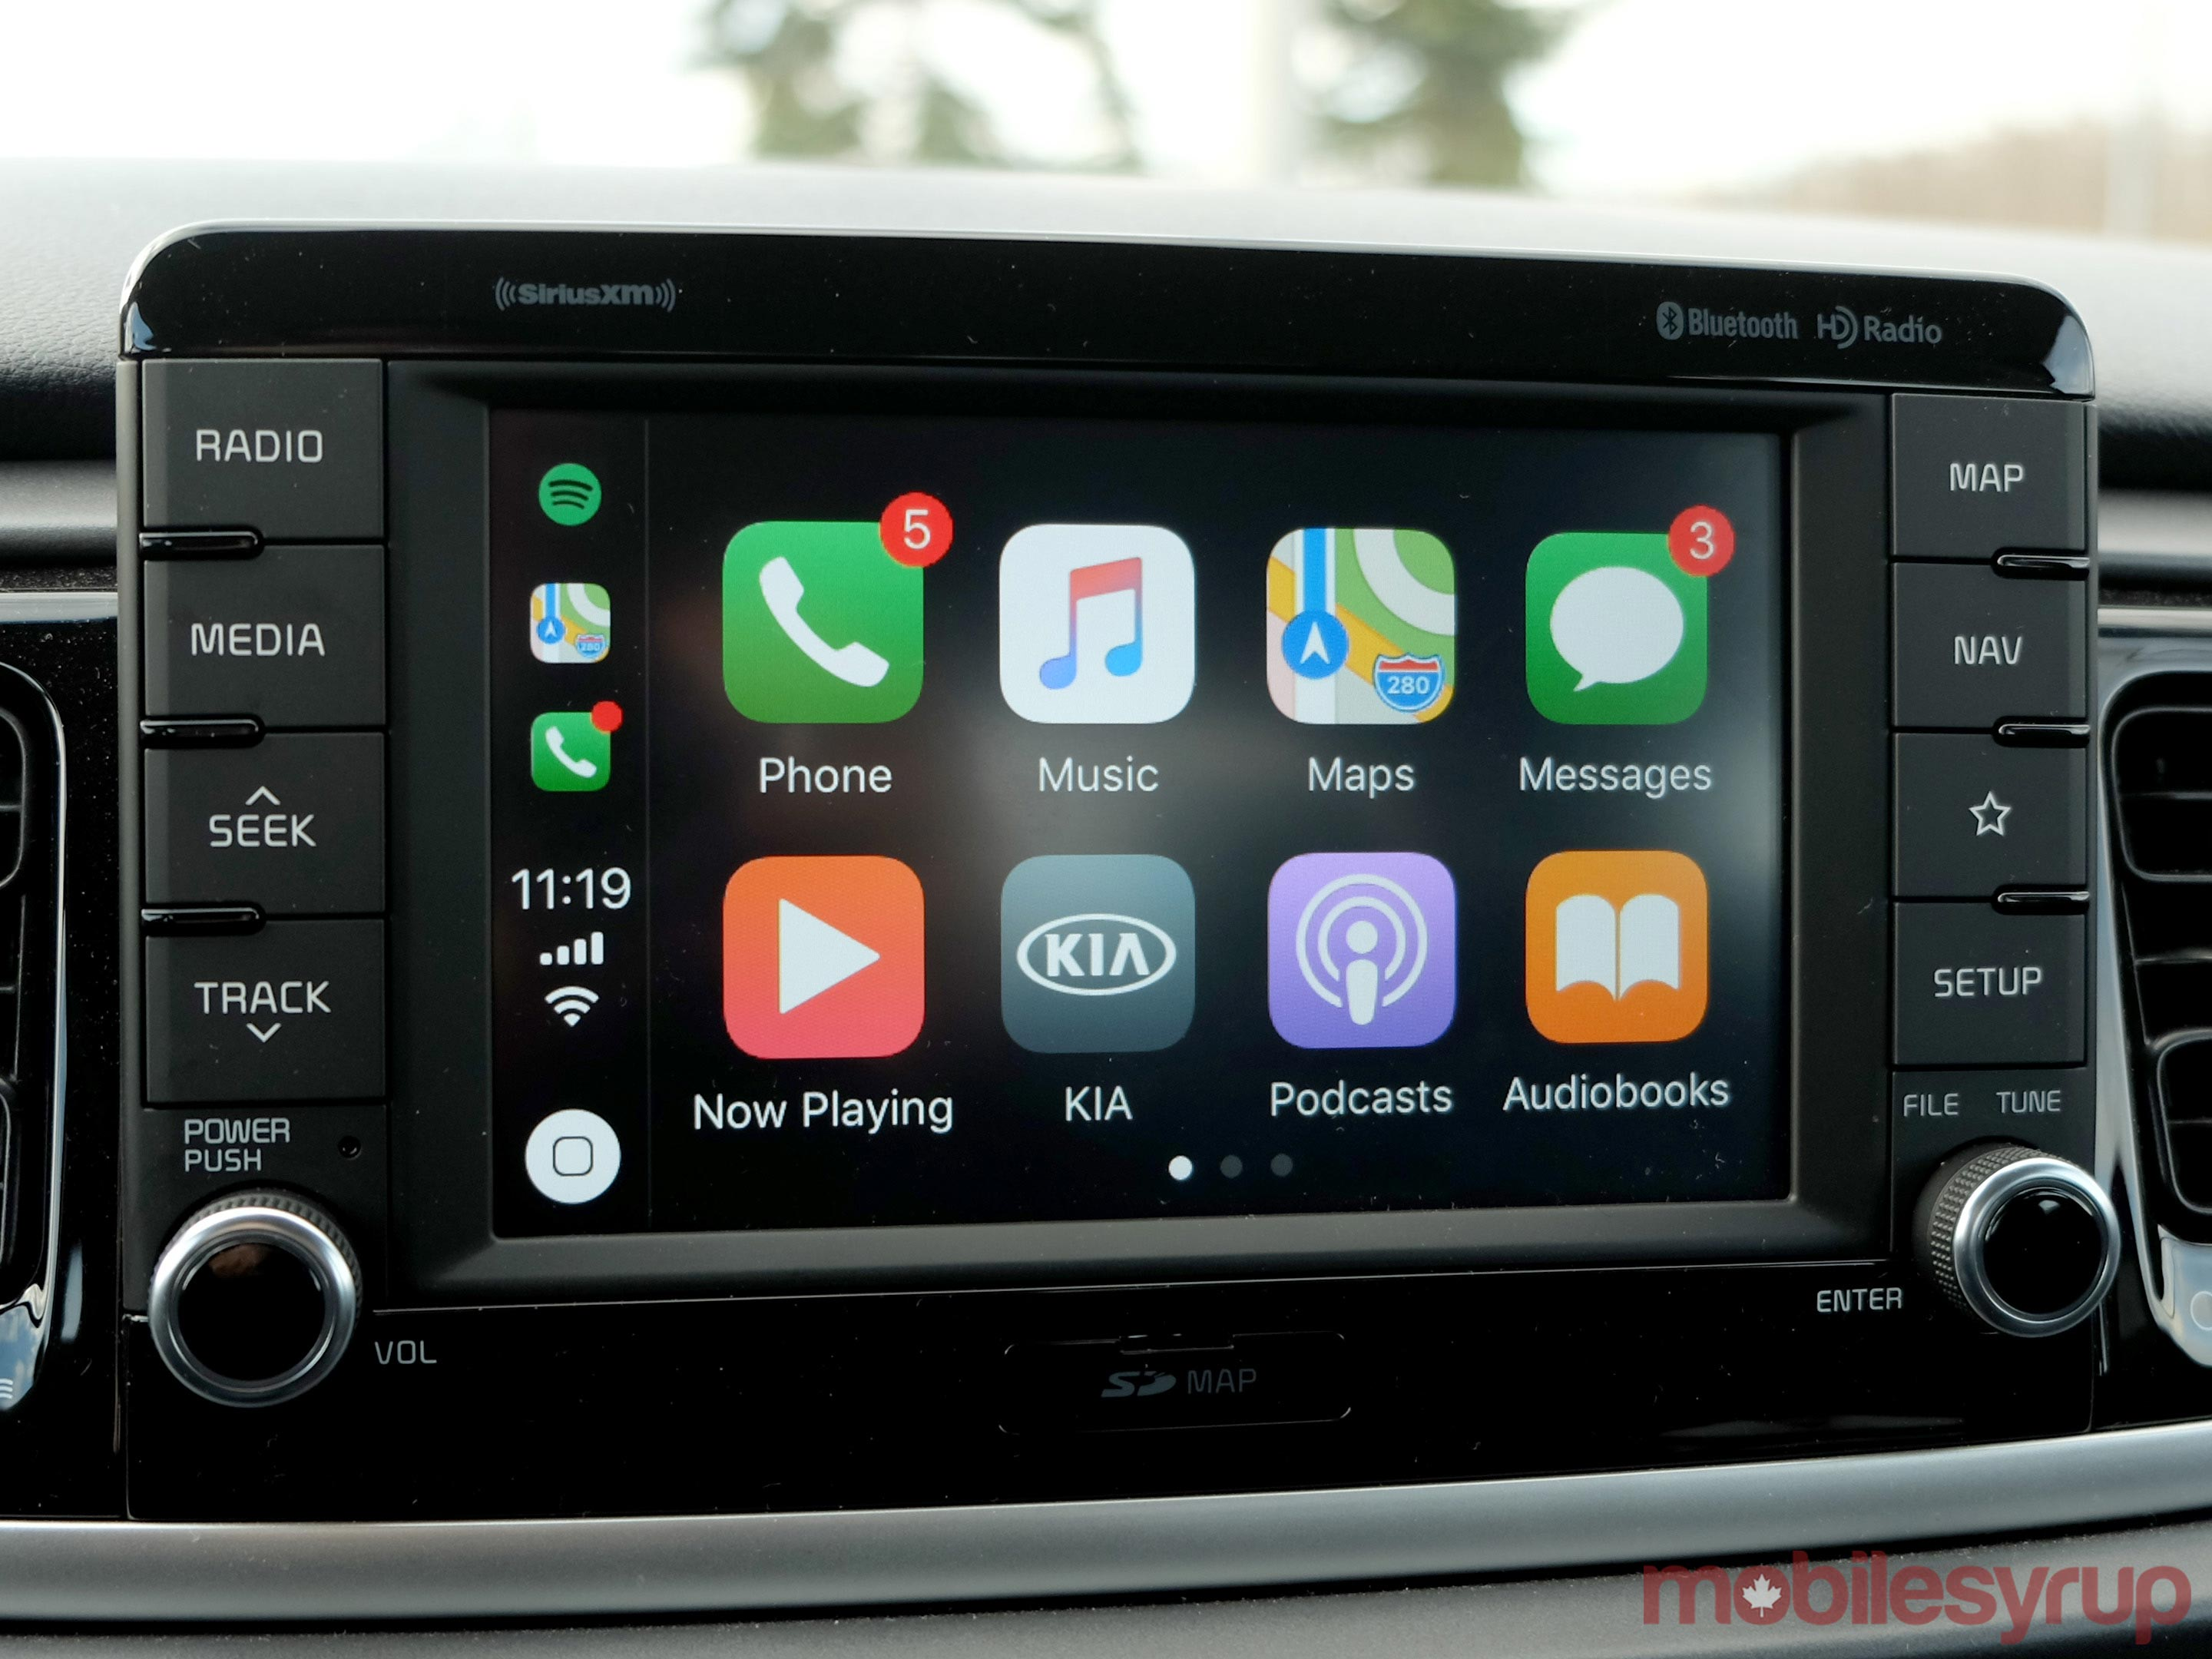 2018 Kia UVO Infotainment System Review: More for less